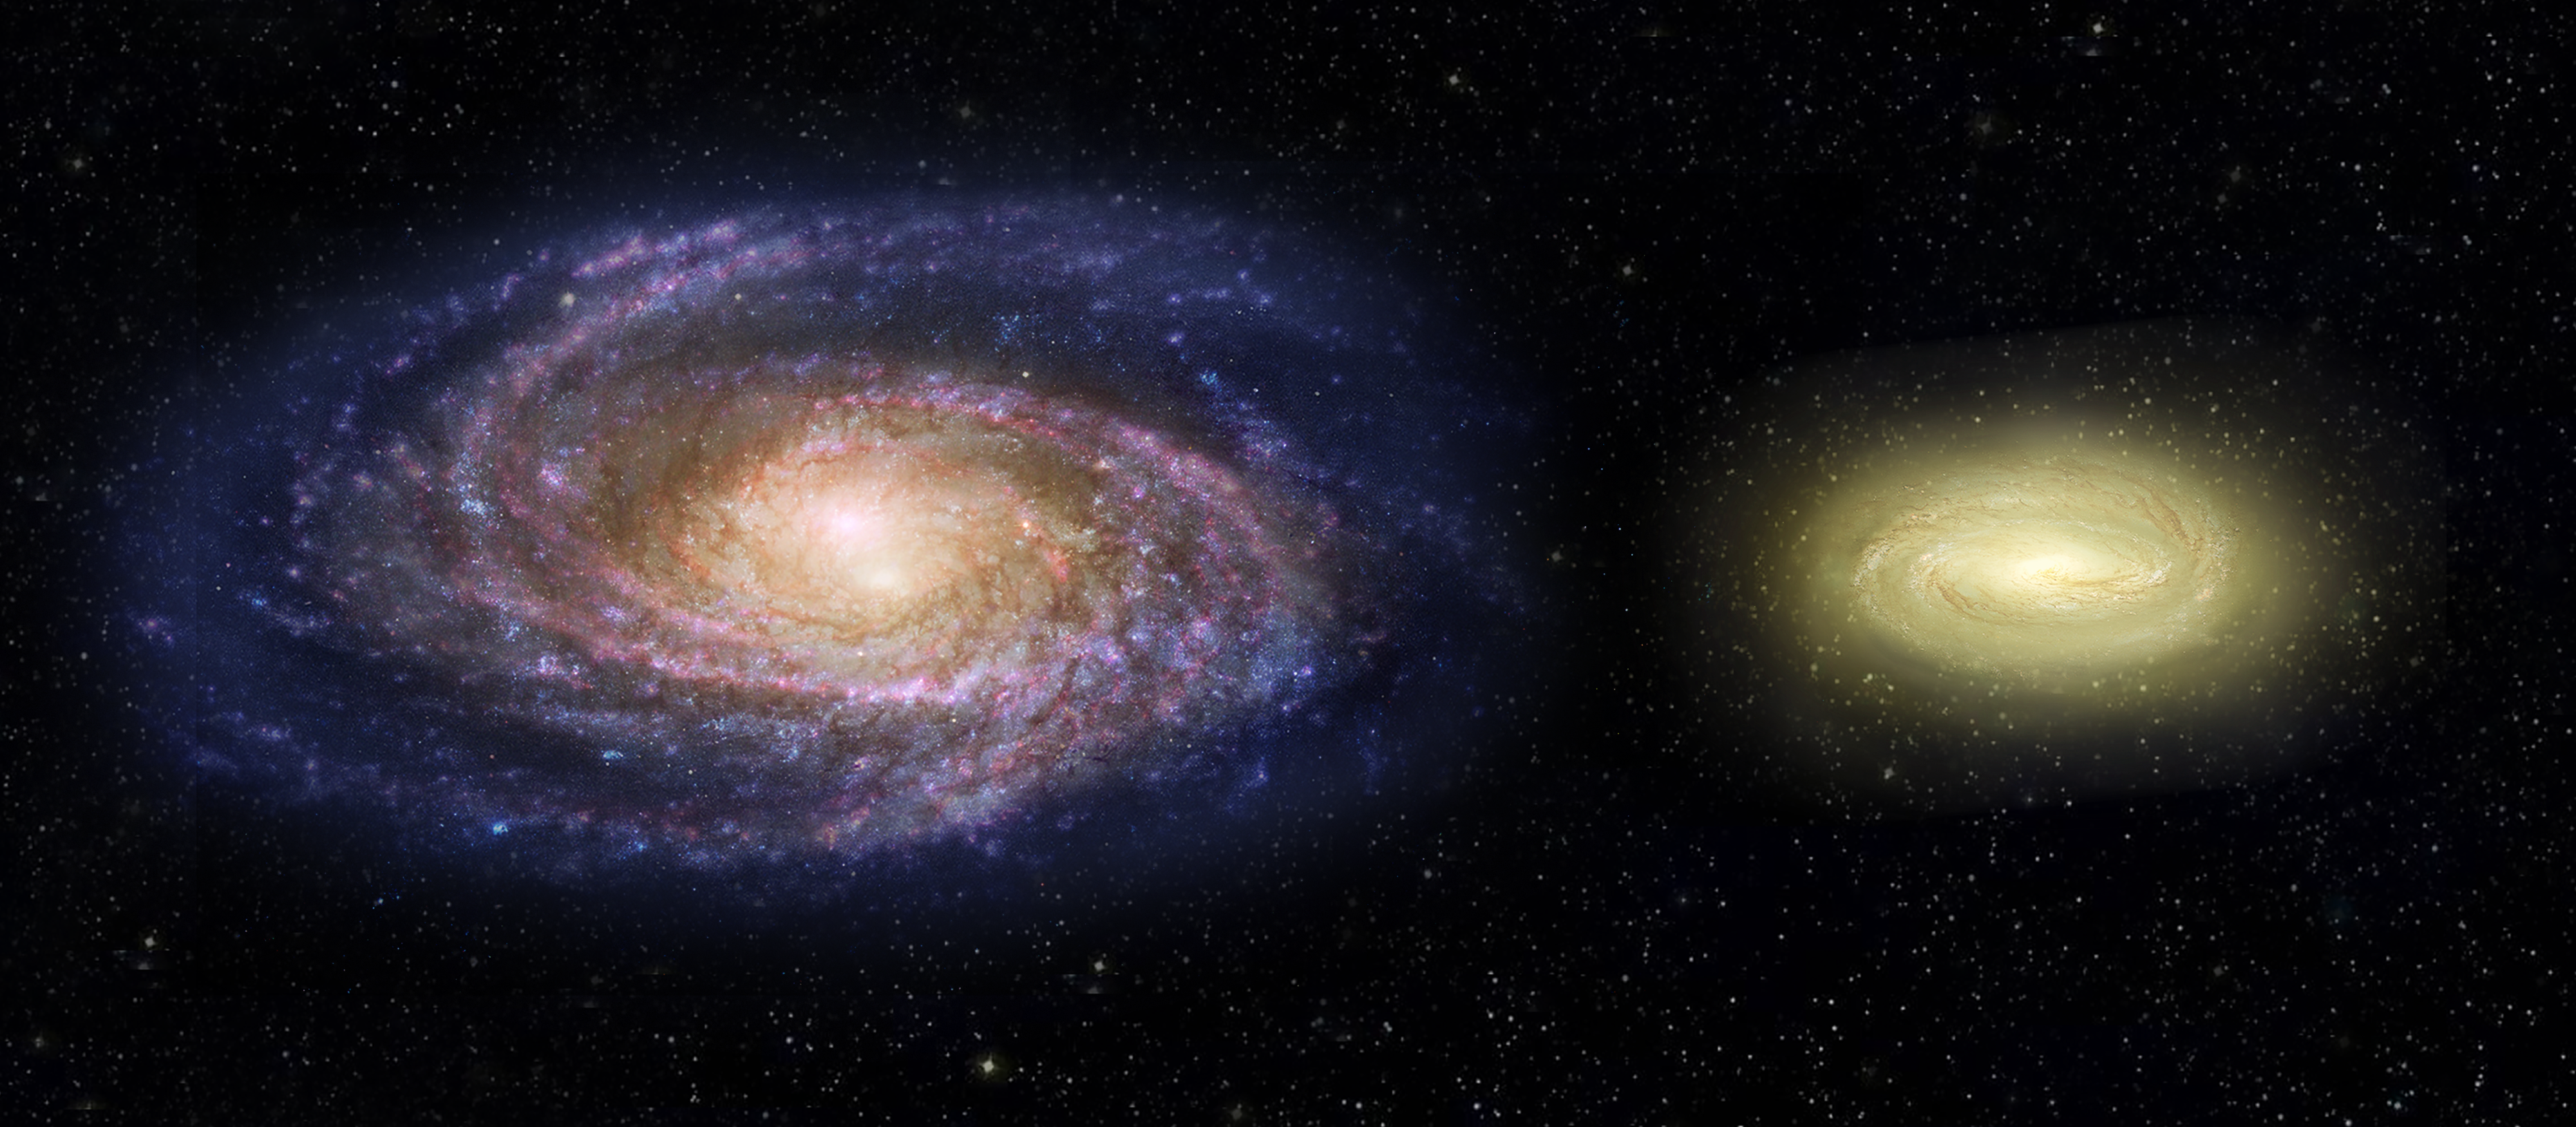 Comparing a Dead Galaxy to Ours